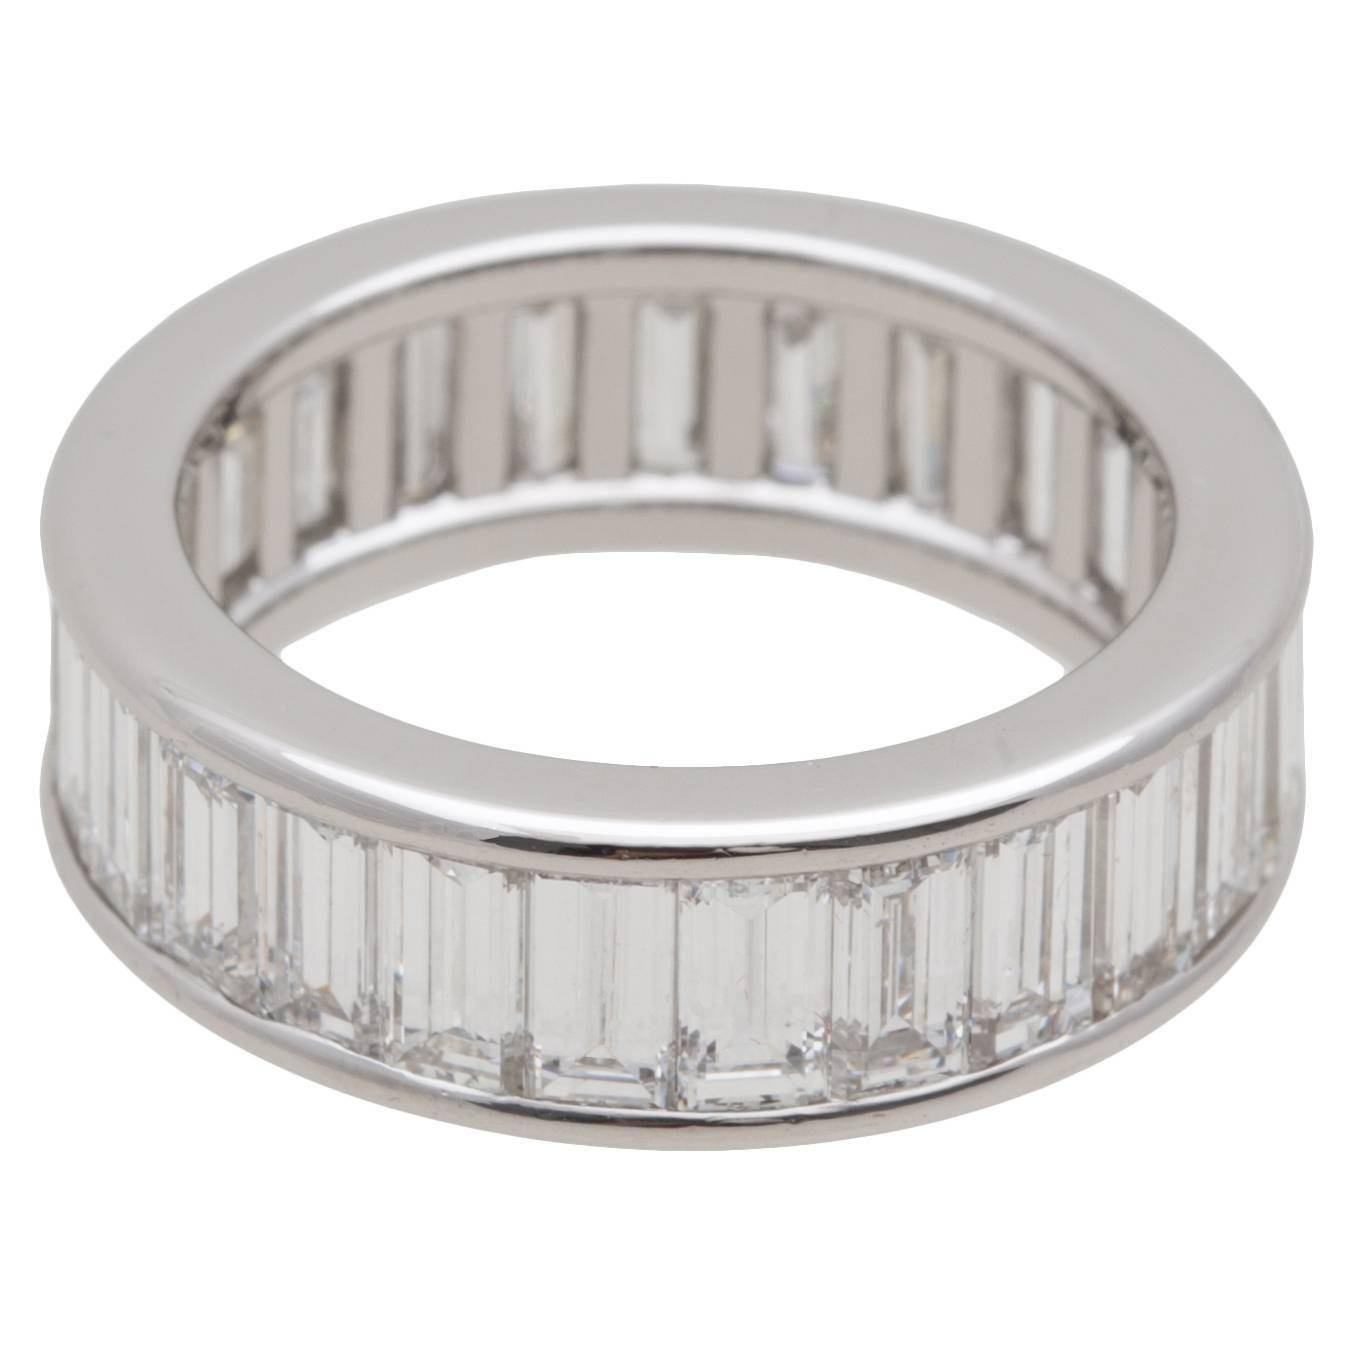 Cartier Diamond Baguette Platinum Eternity Wedding Ring For Sale Within Cartier Wedding Bands (View 3 of 15)